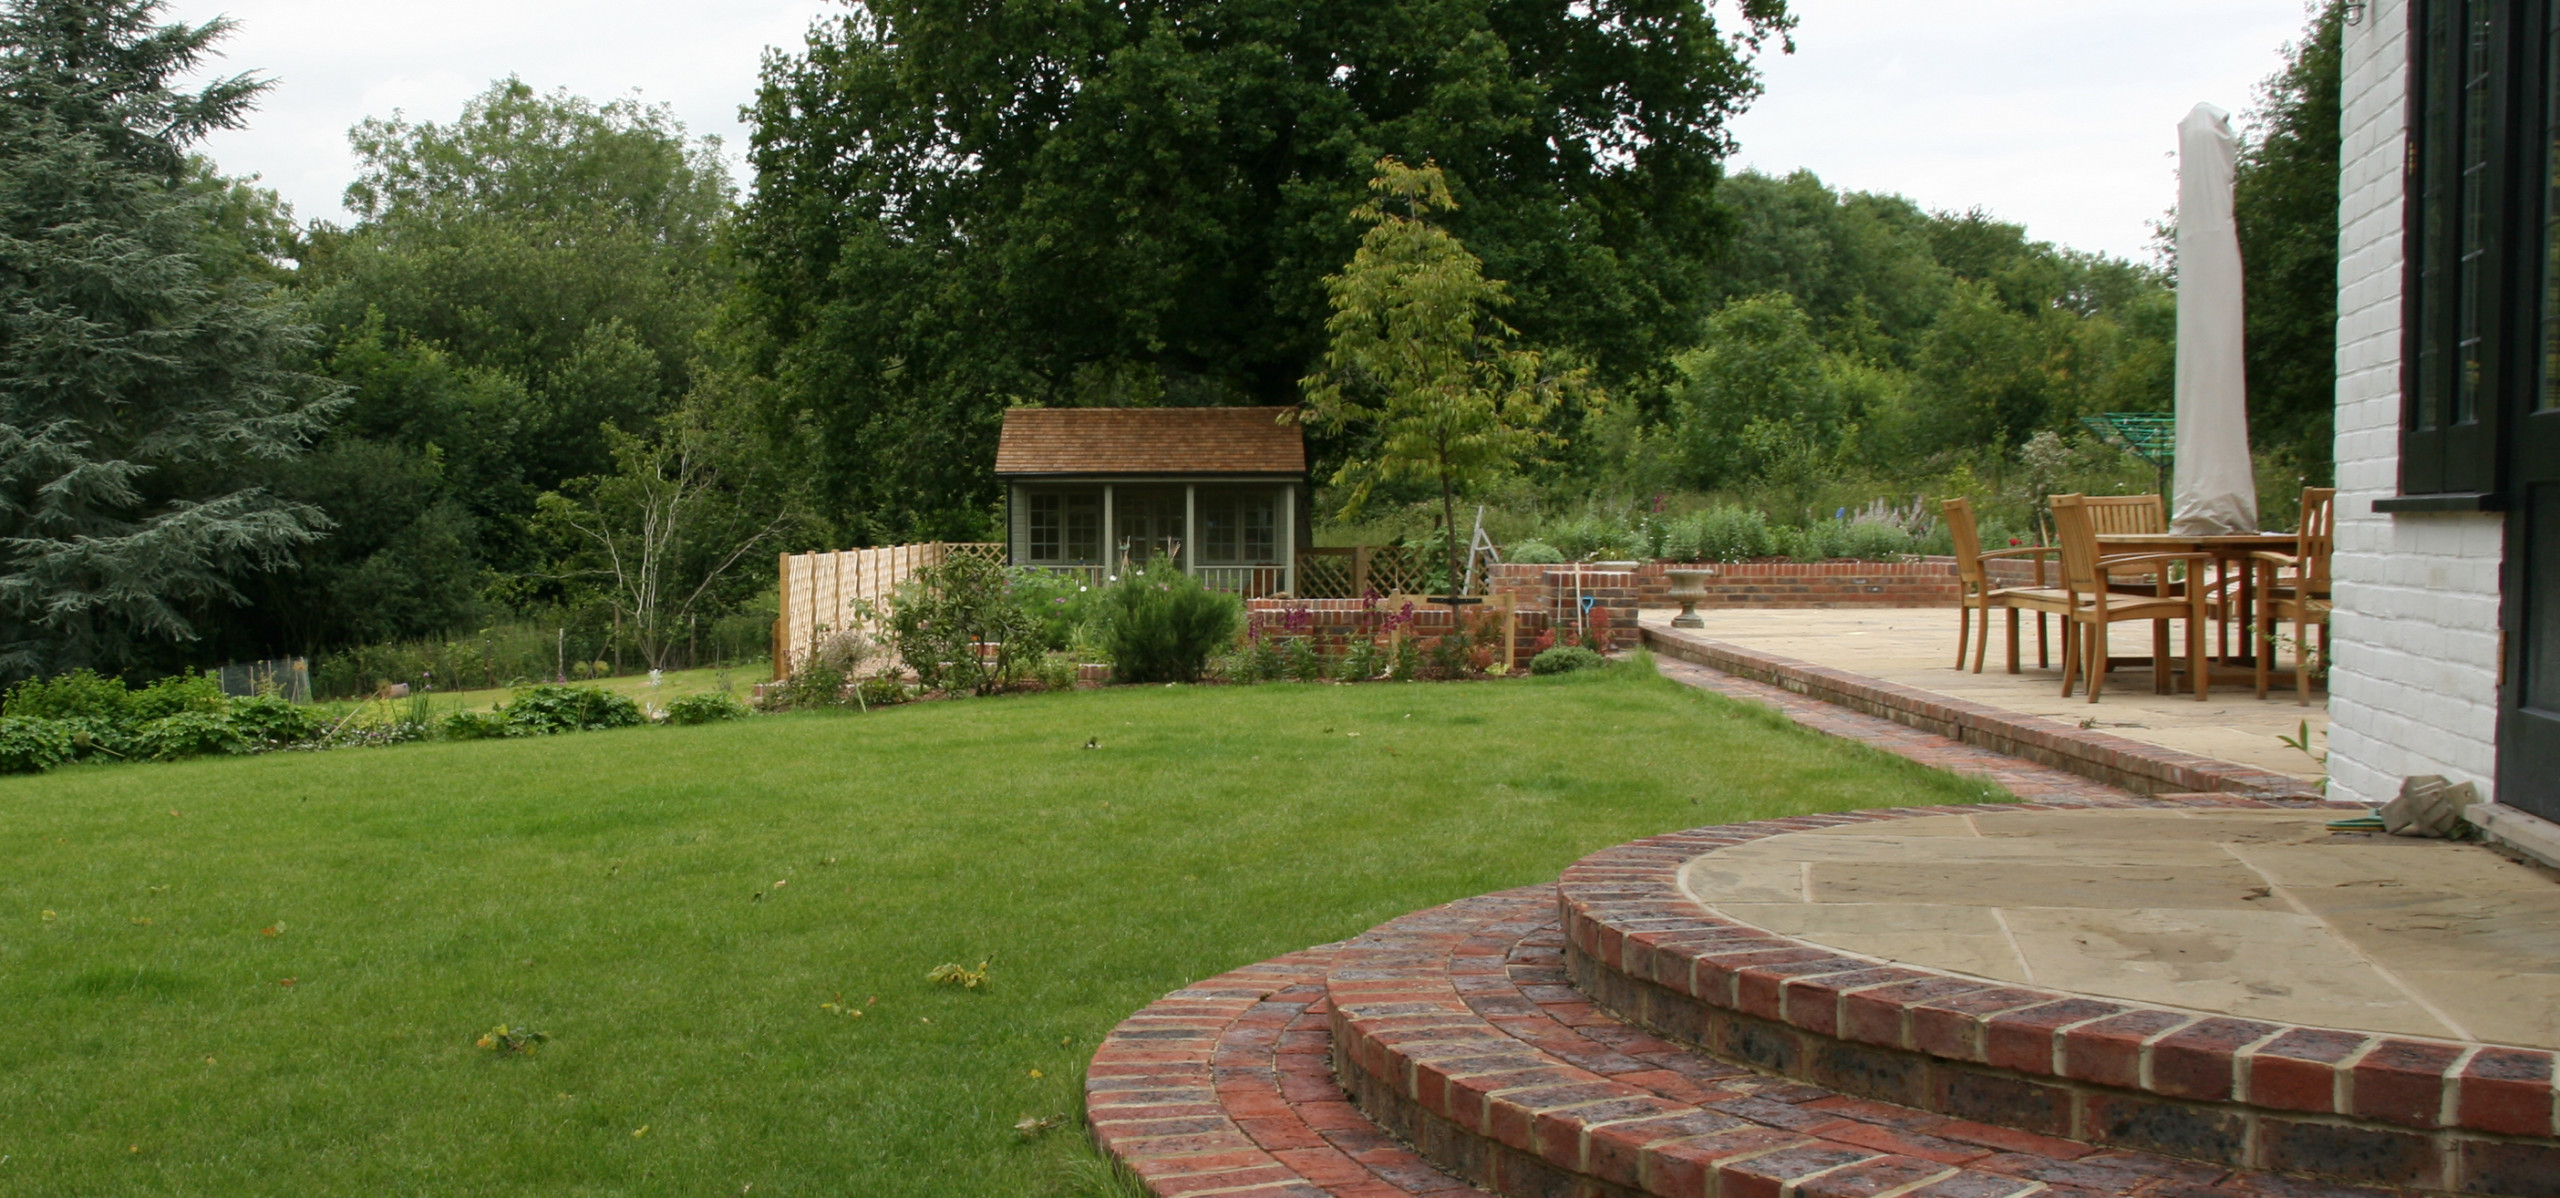 A Family Garden at One With Nature